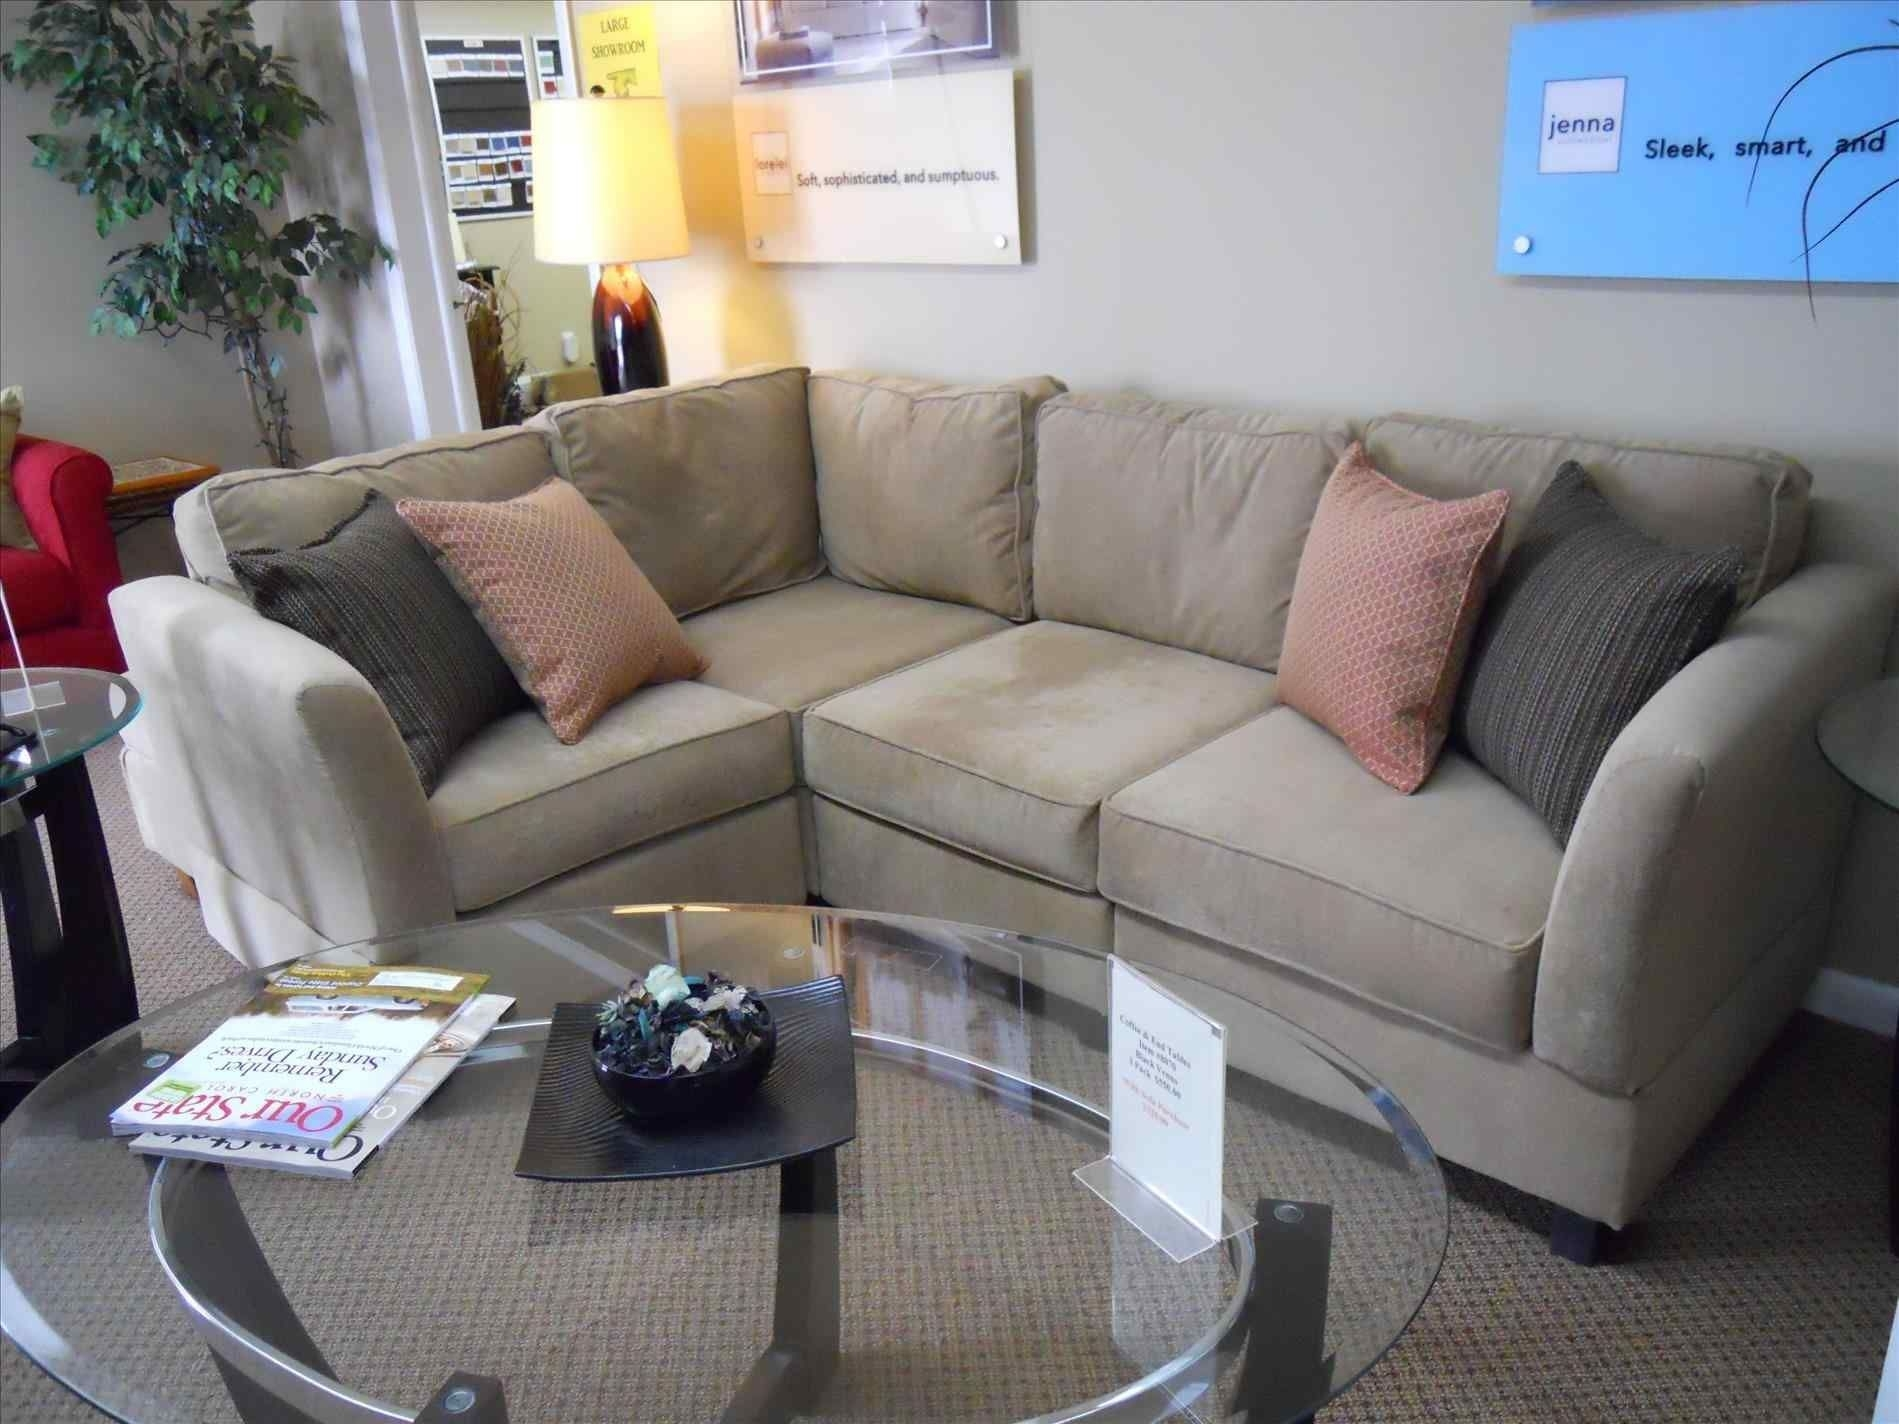 For Cozy Living Room Lazy Boy Chair Home Designs Lazy Sectional Sofa Within Sectional Sofas For Small Places (Image 8 of 10)